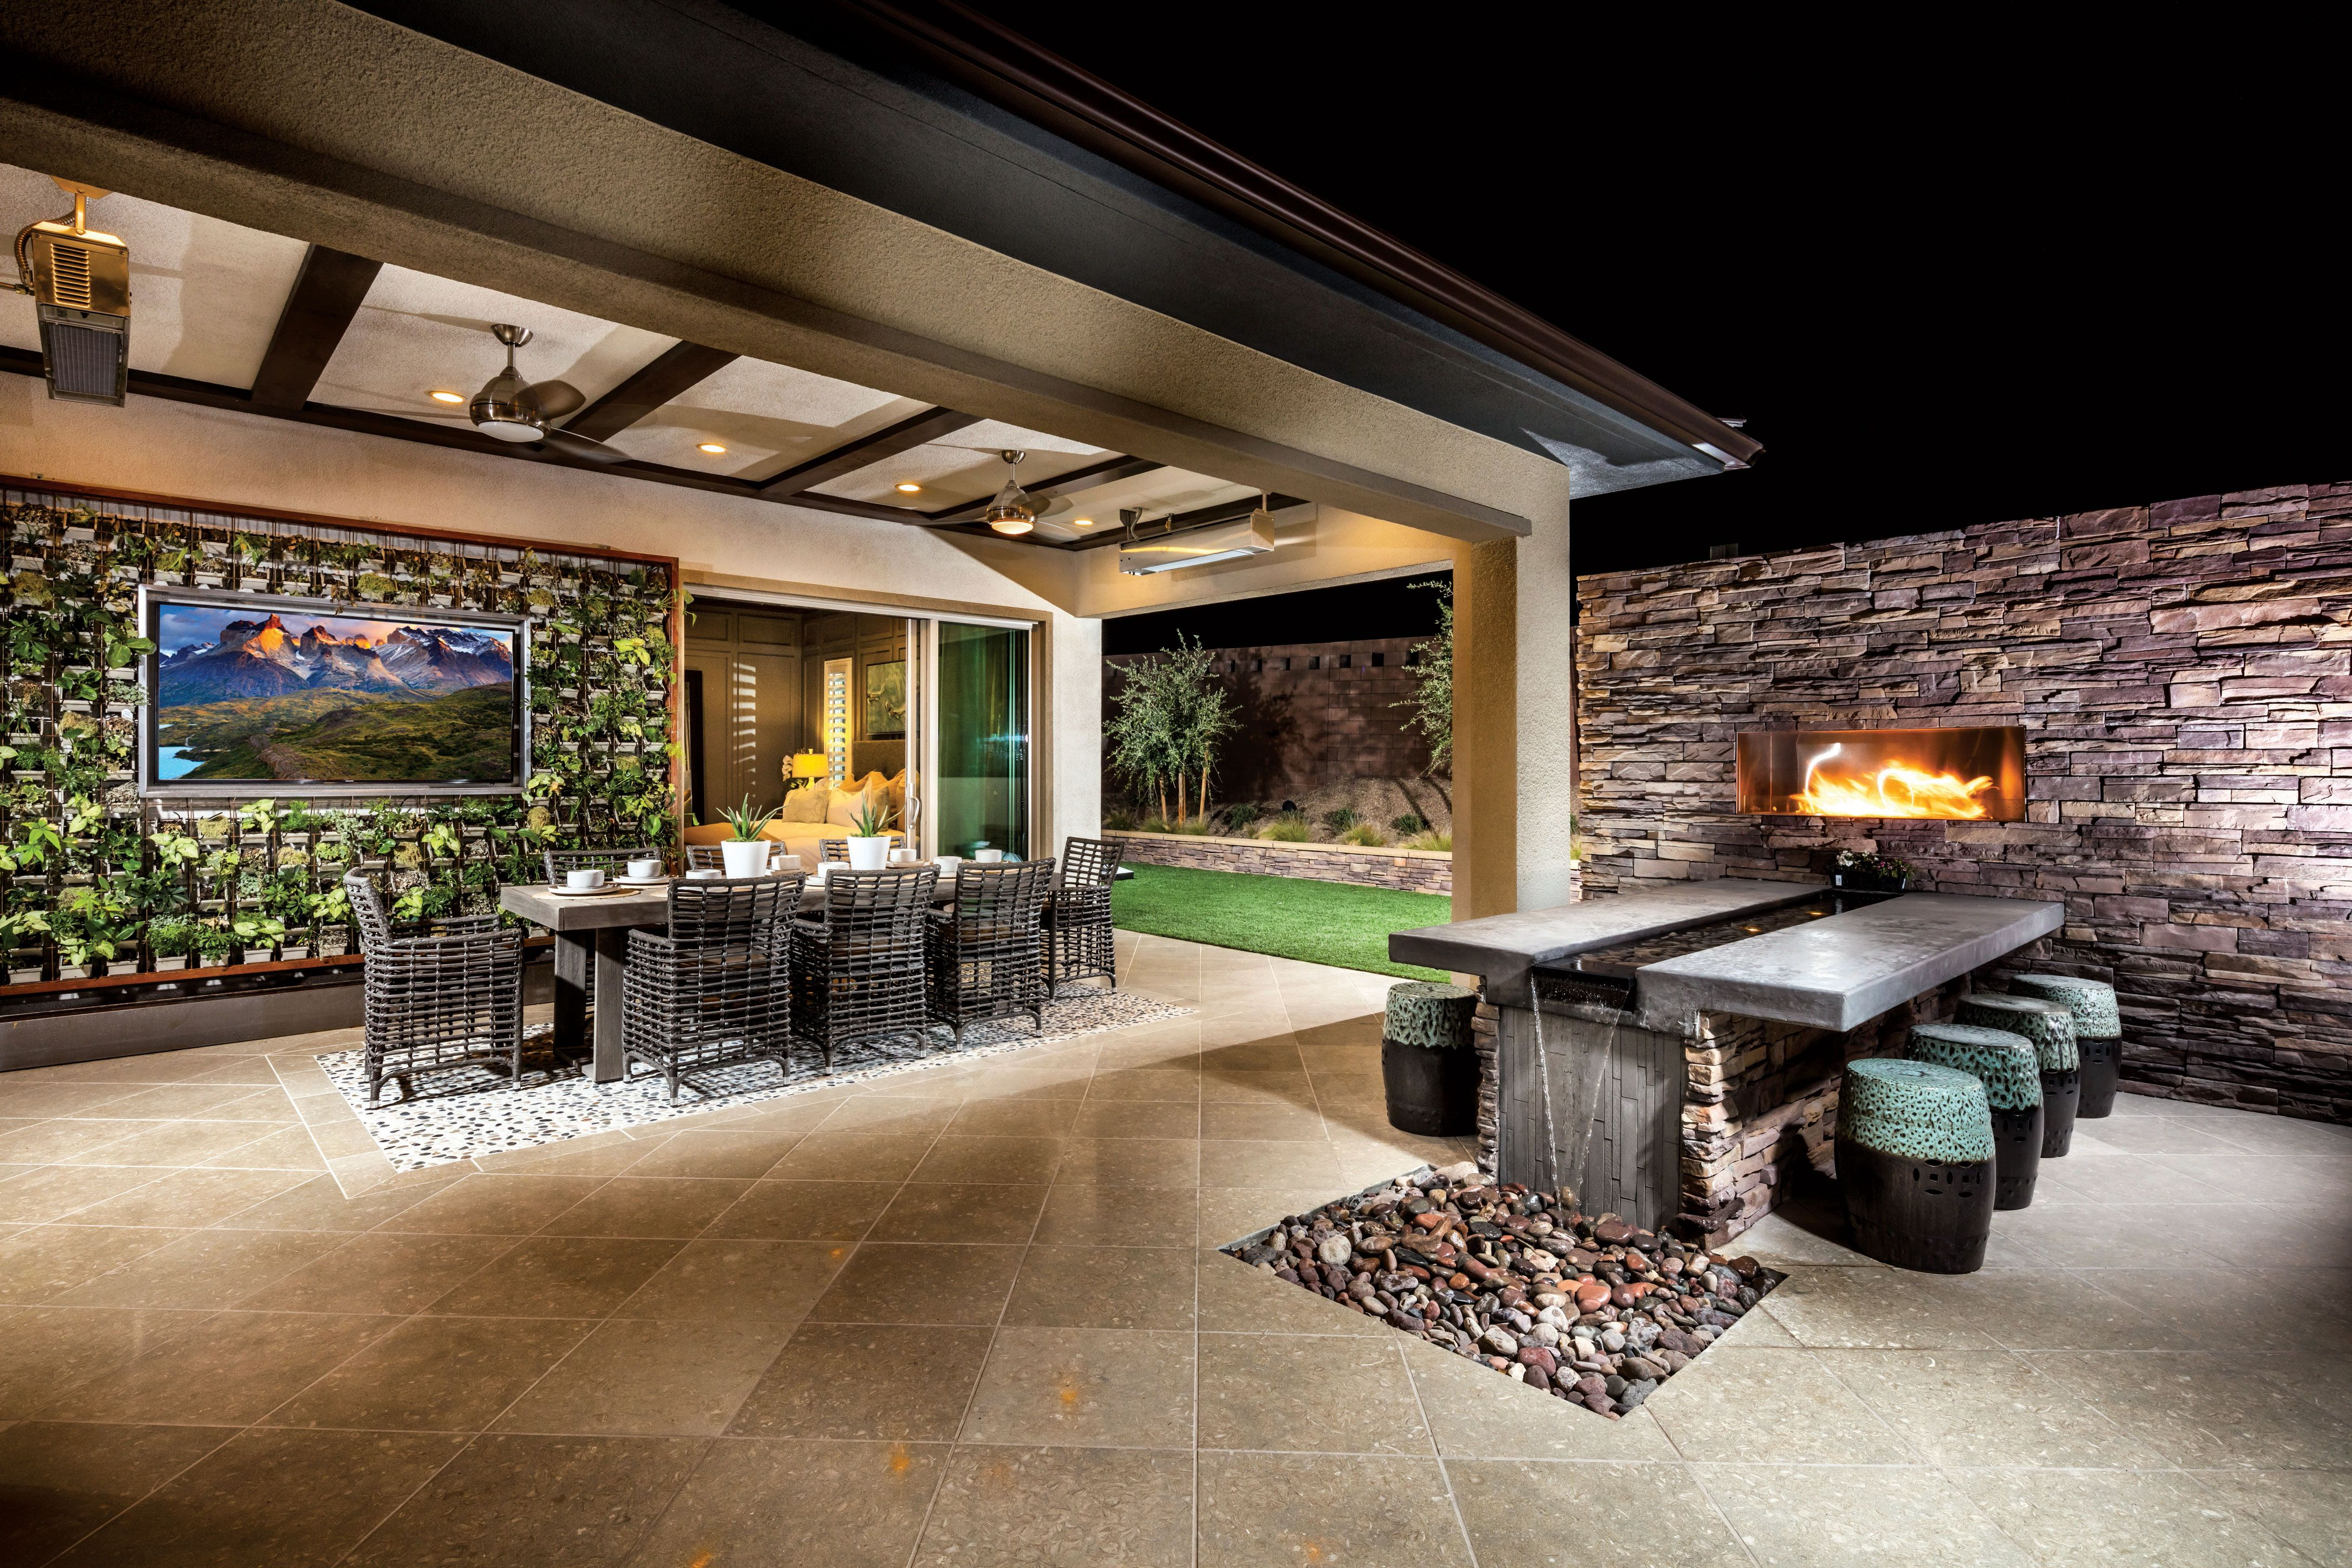 Impress Your Guests With This Magnificent Outdoor Room Coupled With Exquisite Stone Elements And Natural Beauty From Th Backyard Small Backyard Outdoor Kitchen